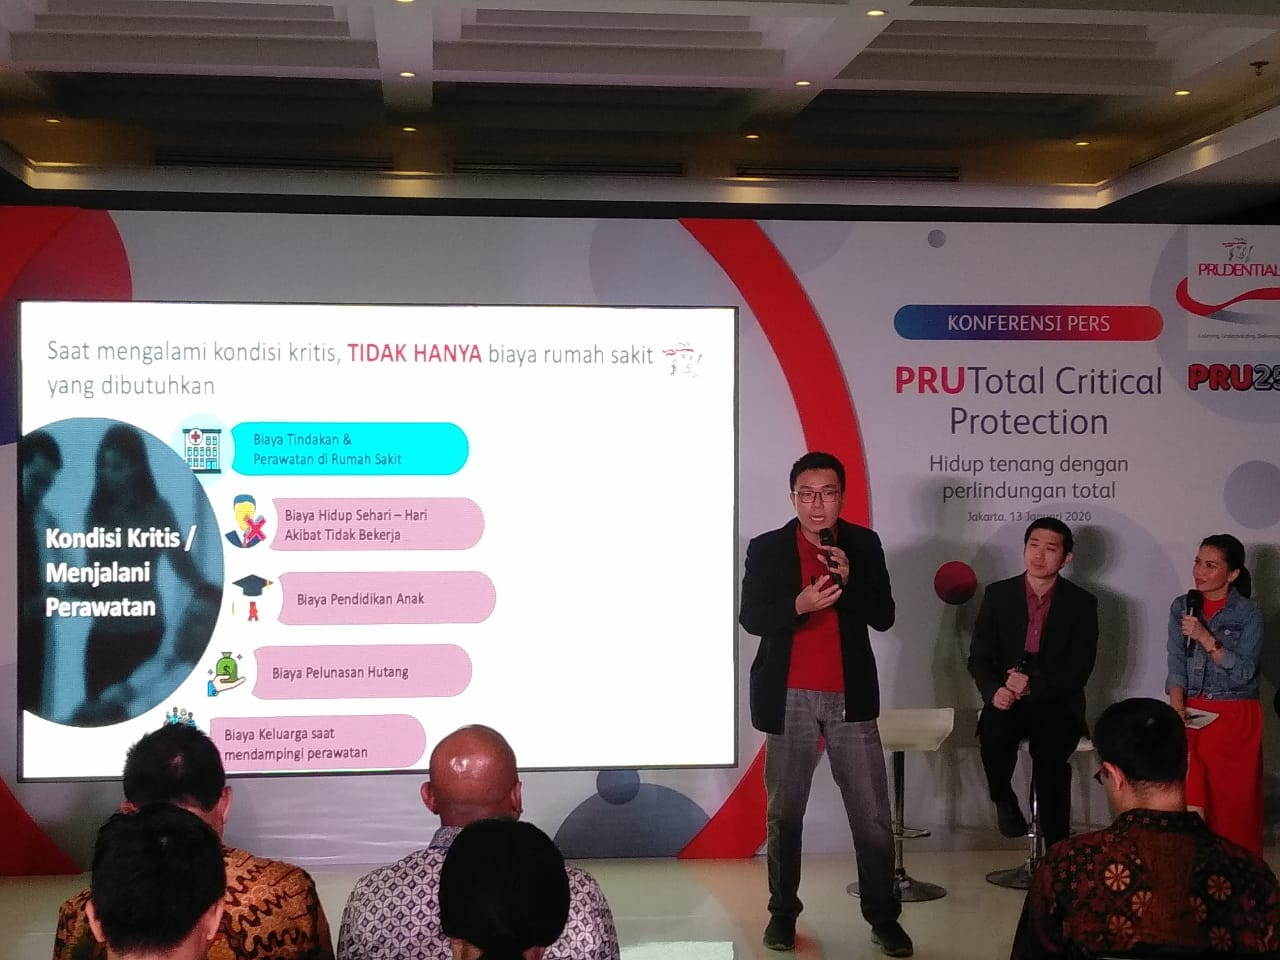 Himawan Purnama, Head of Product Development Prudential Indonesia